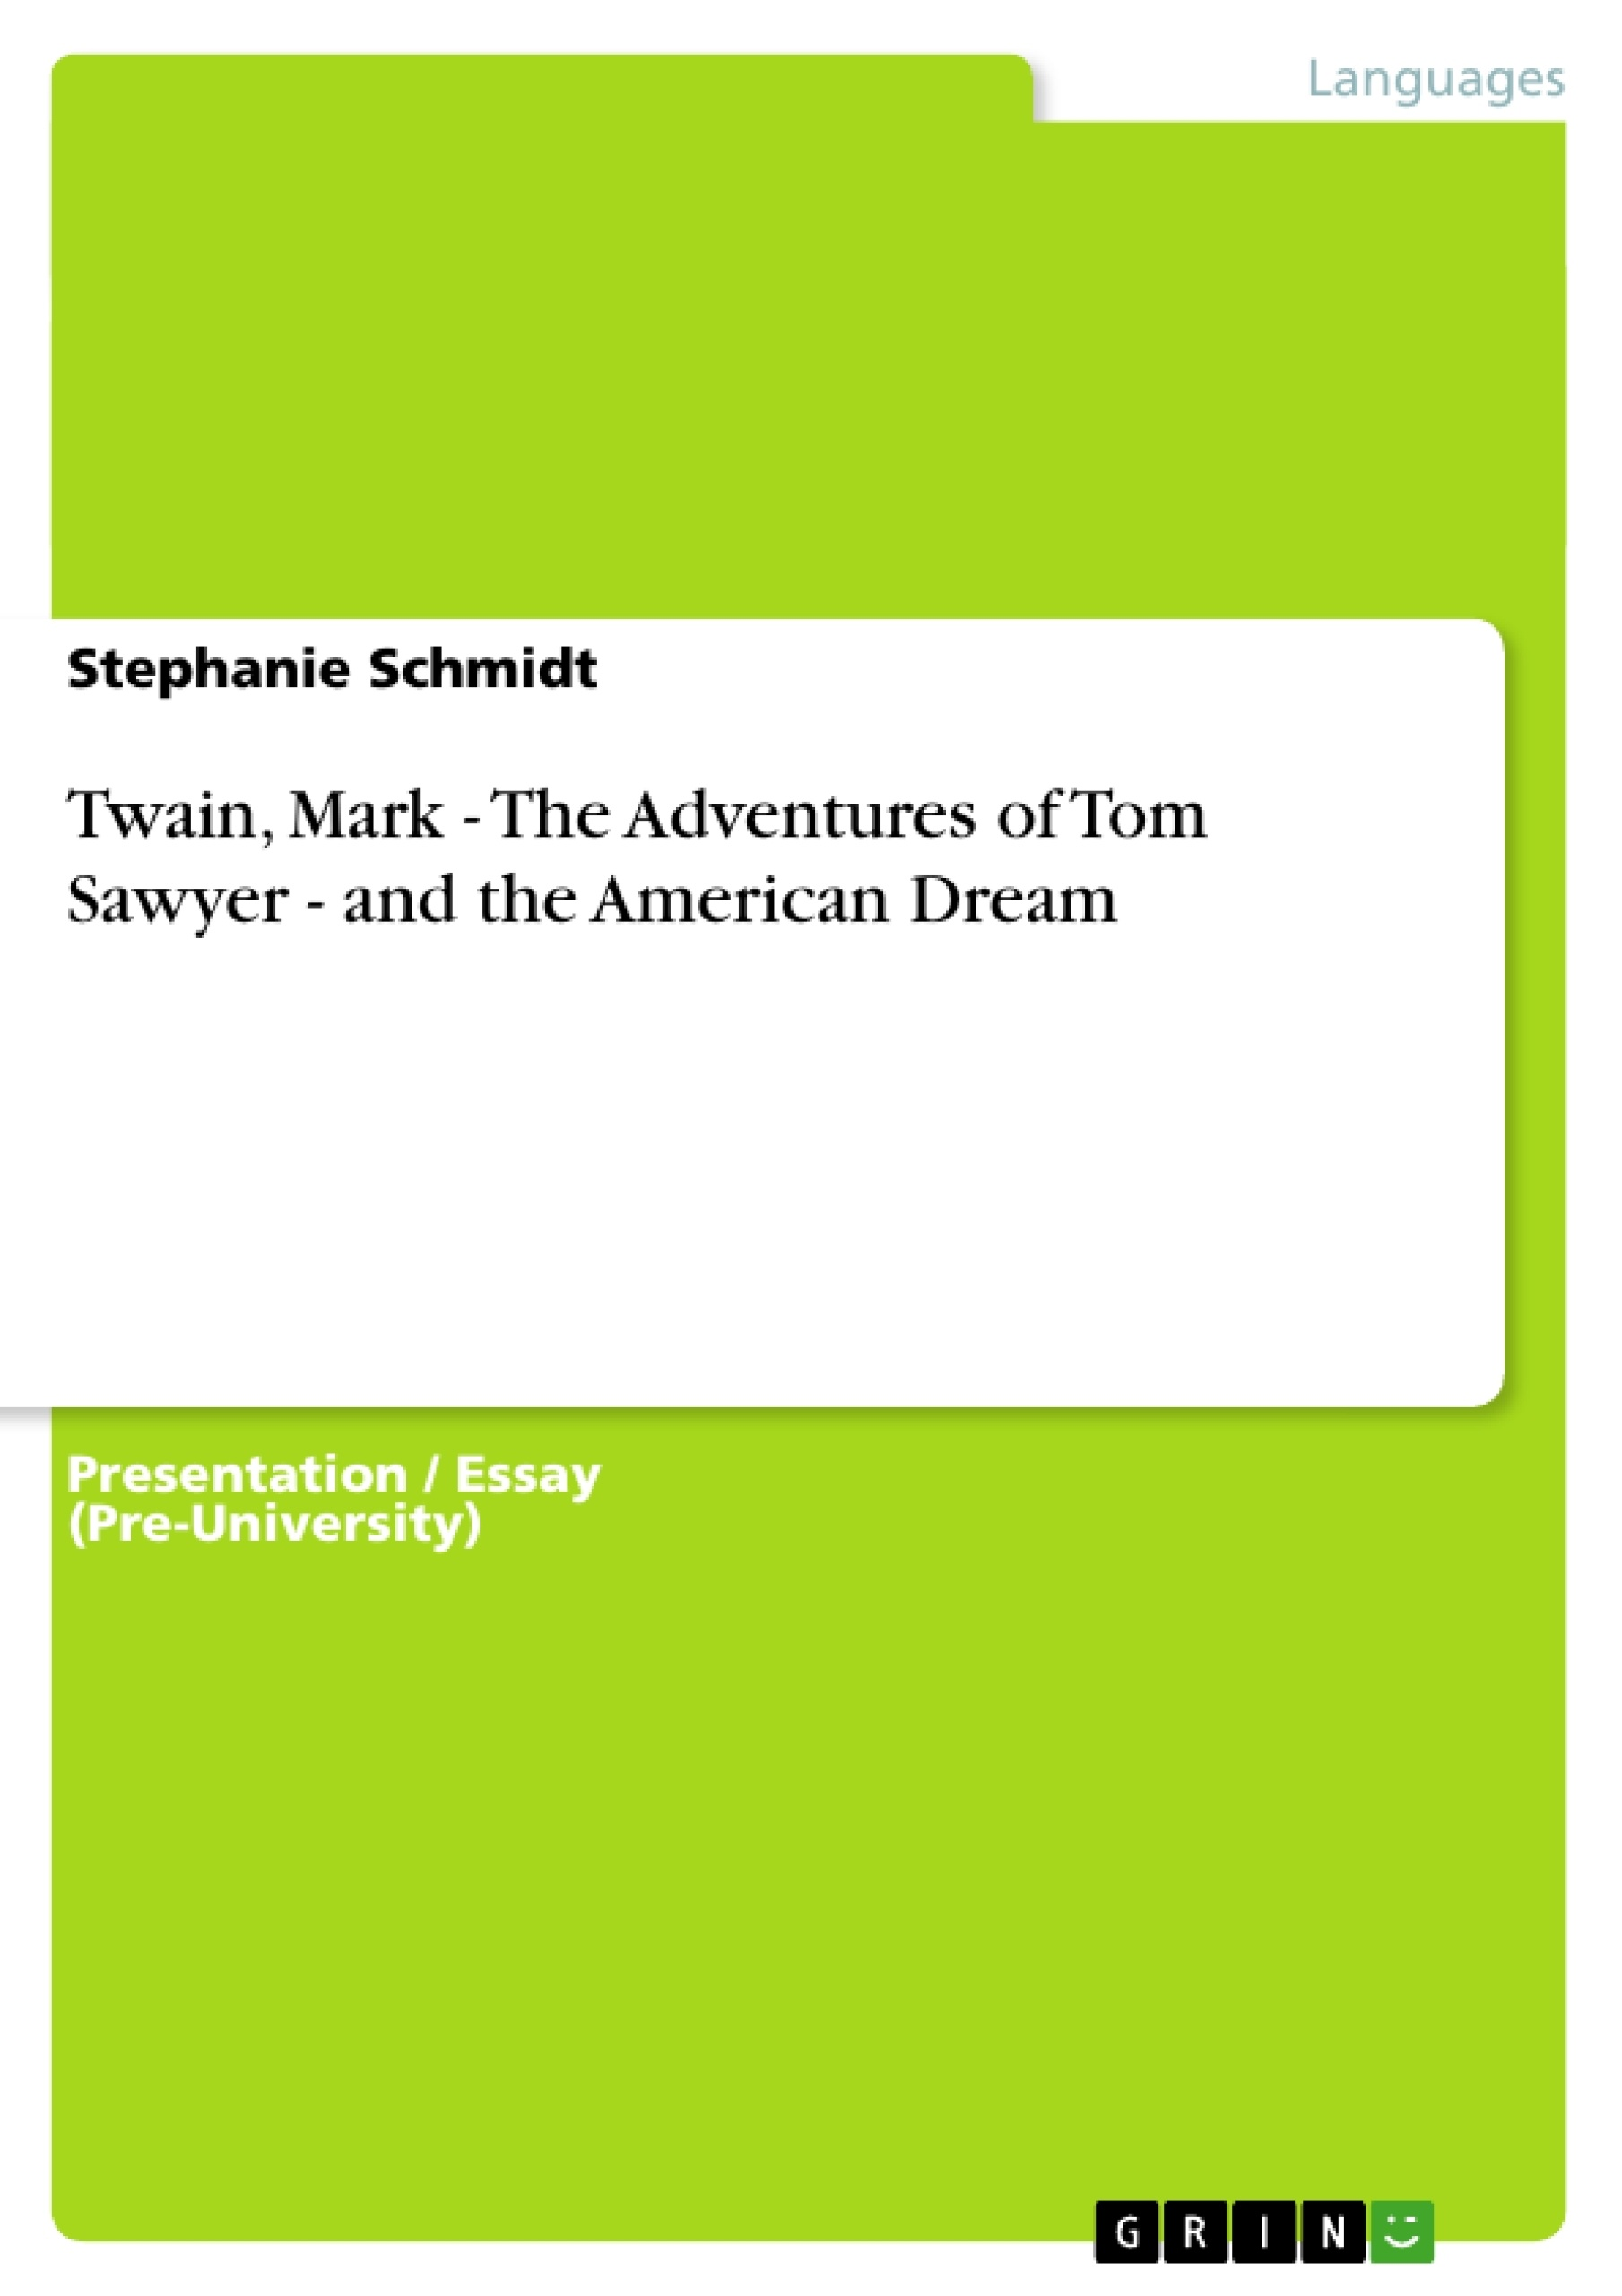 Five paragraph essay on the american dream